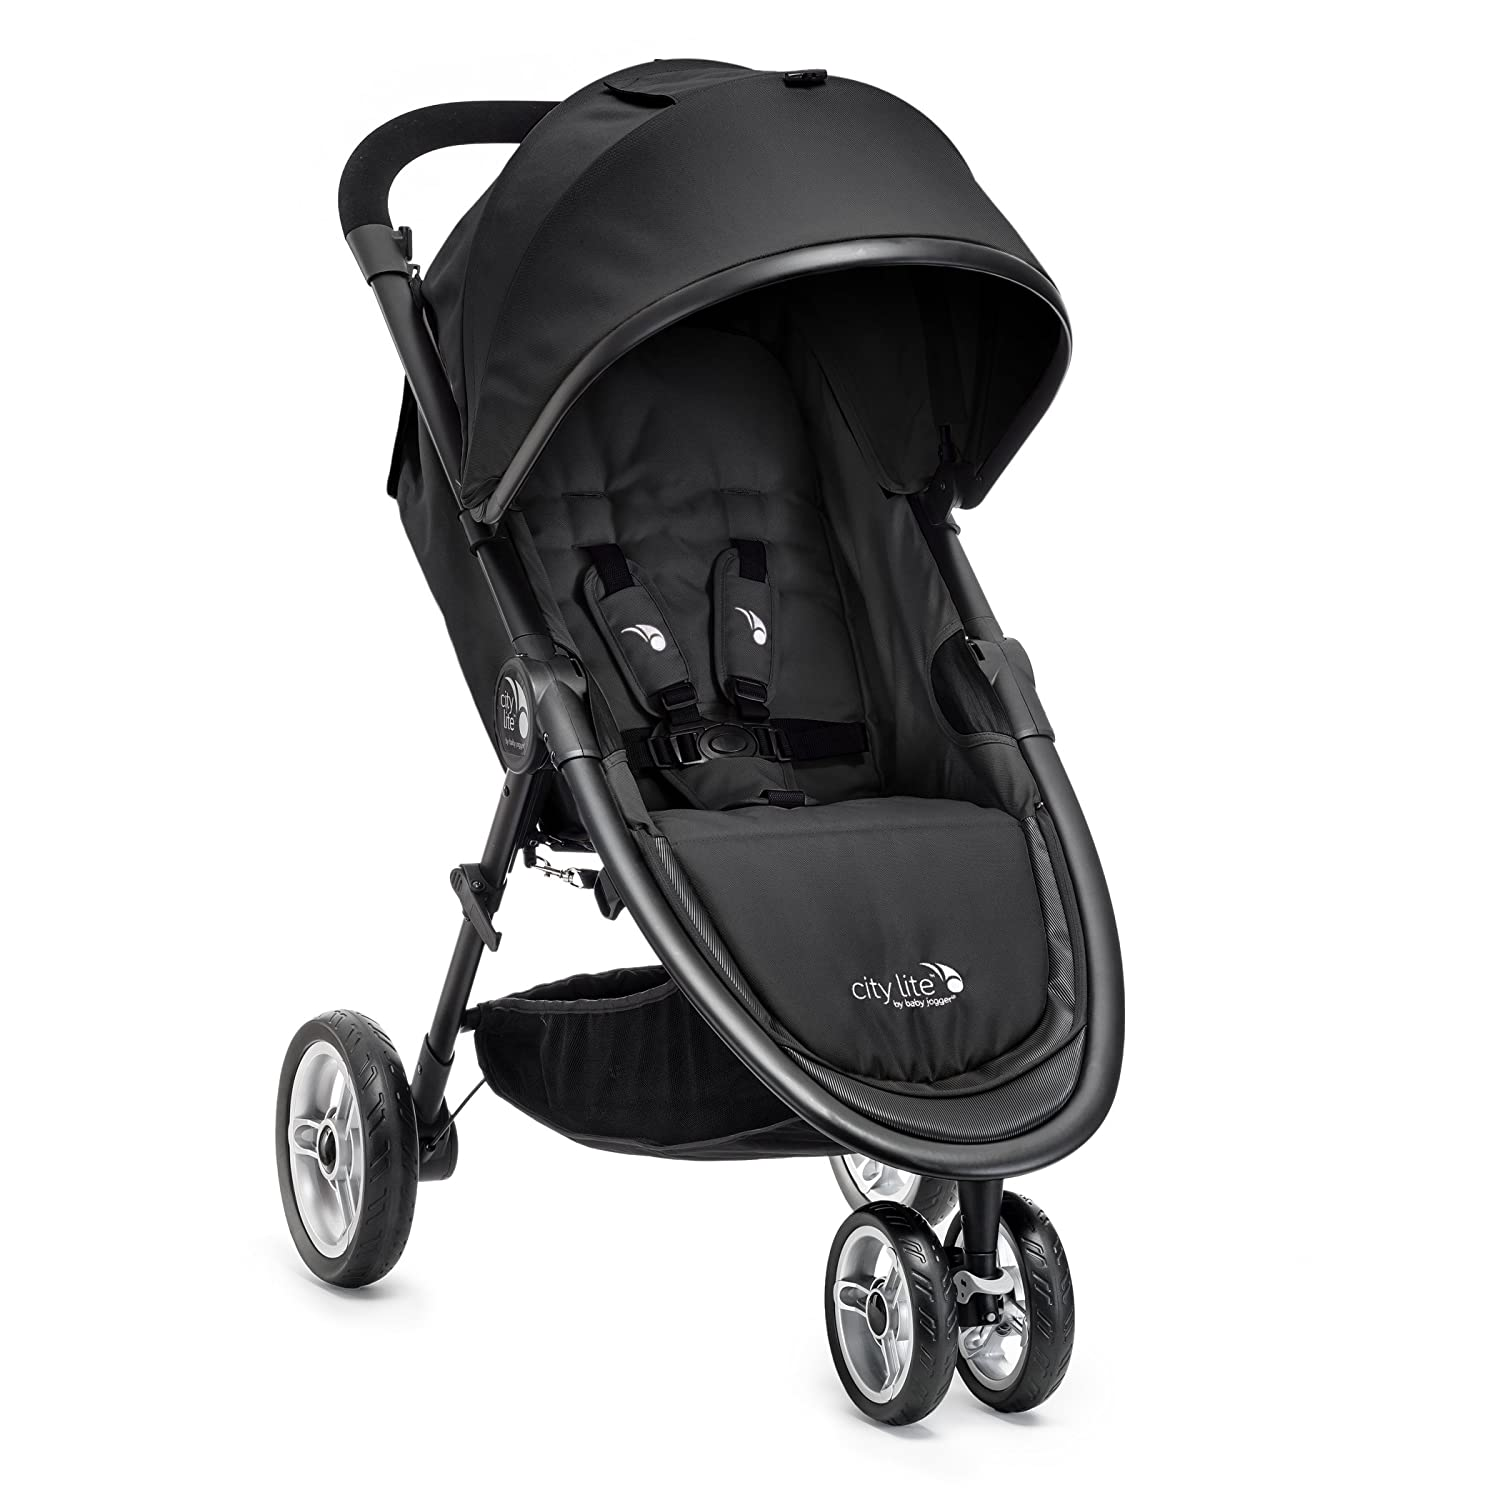 Amazon.com : Baby Jogger City Lite Stroller - Black : Lightweight ...